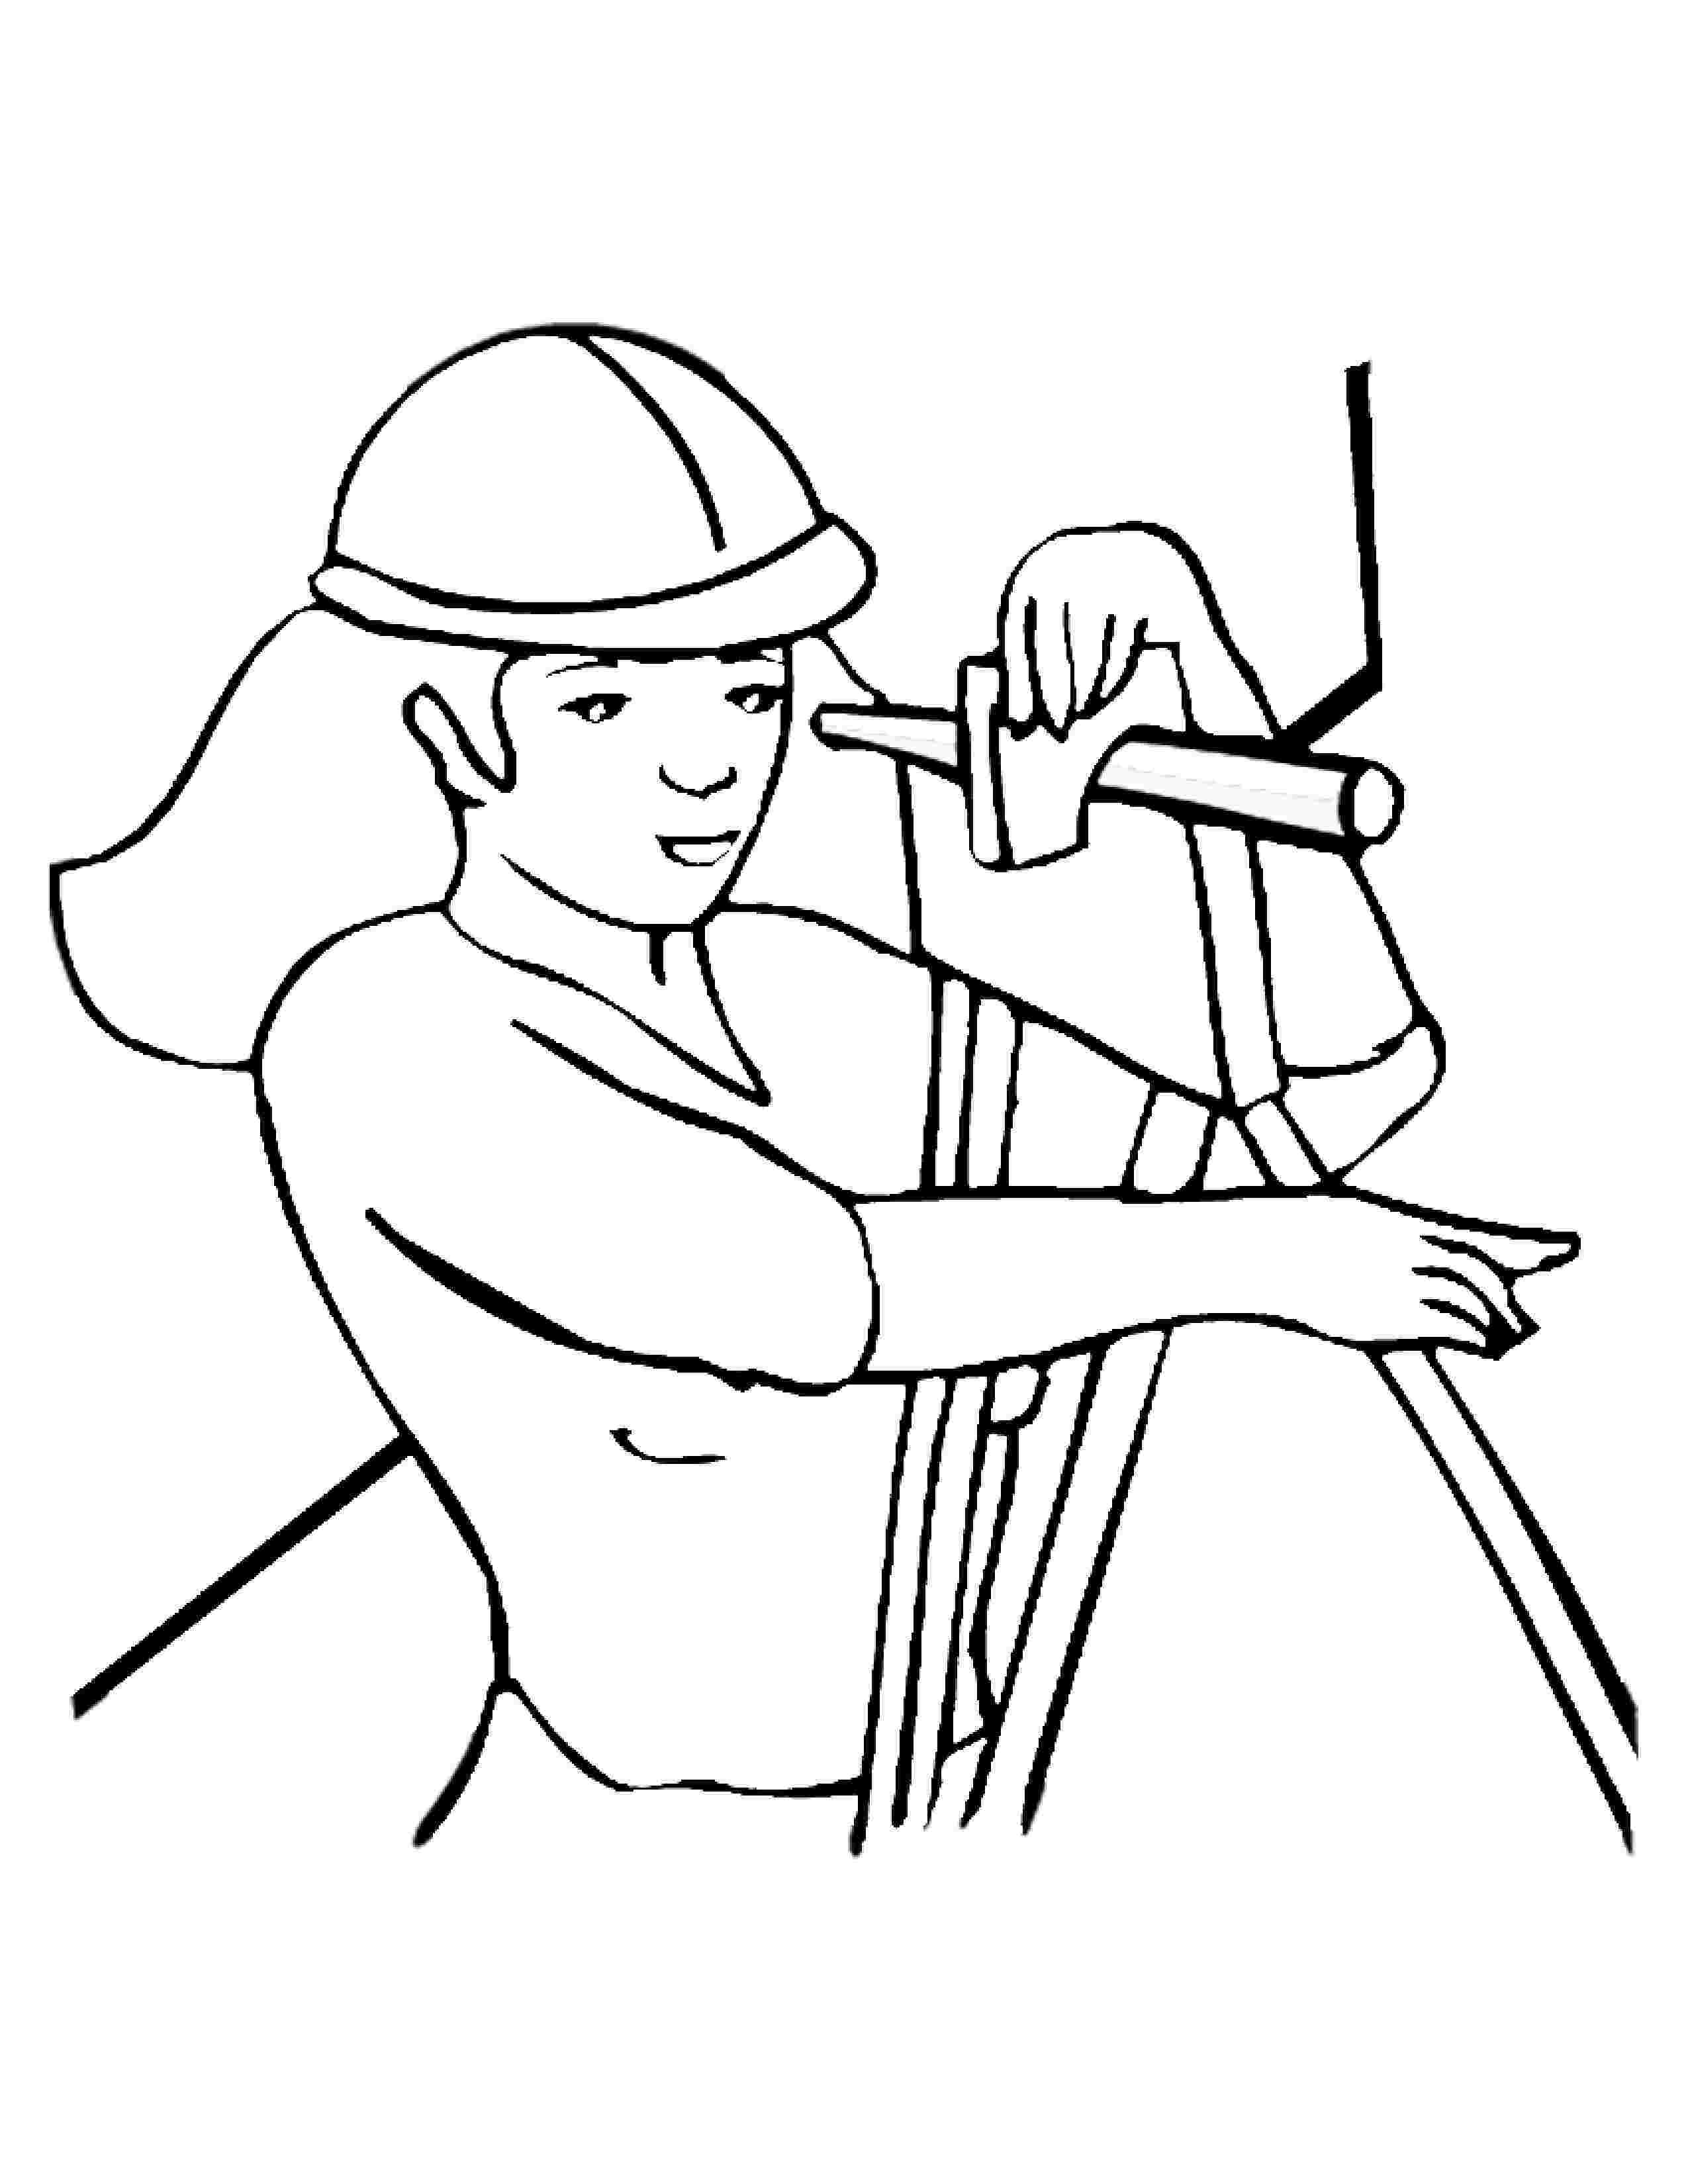 construction equipment coloring pages construction equipment coloring pages coloring pages for construction coloring equipment pages